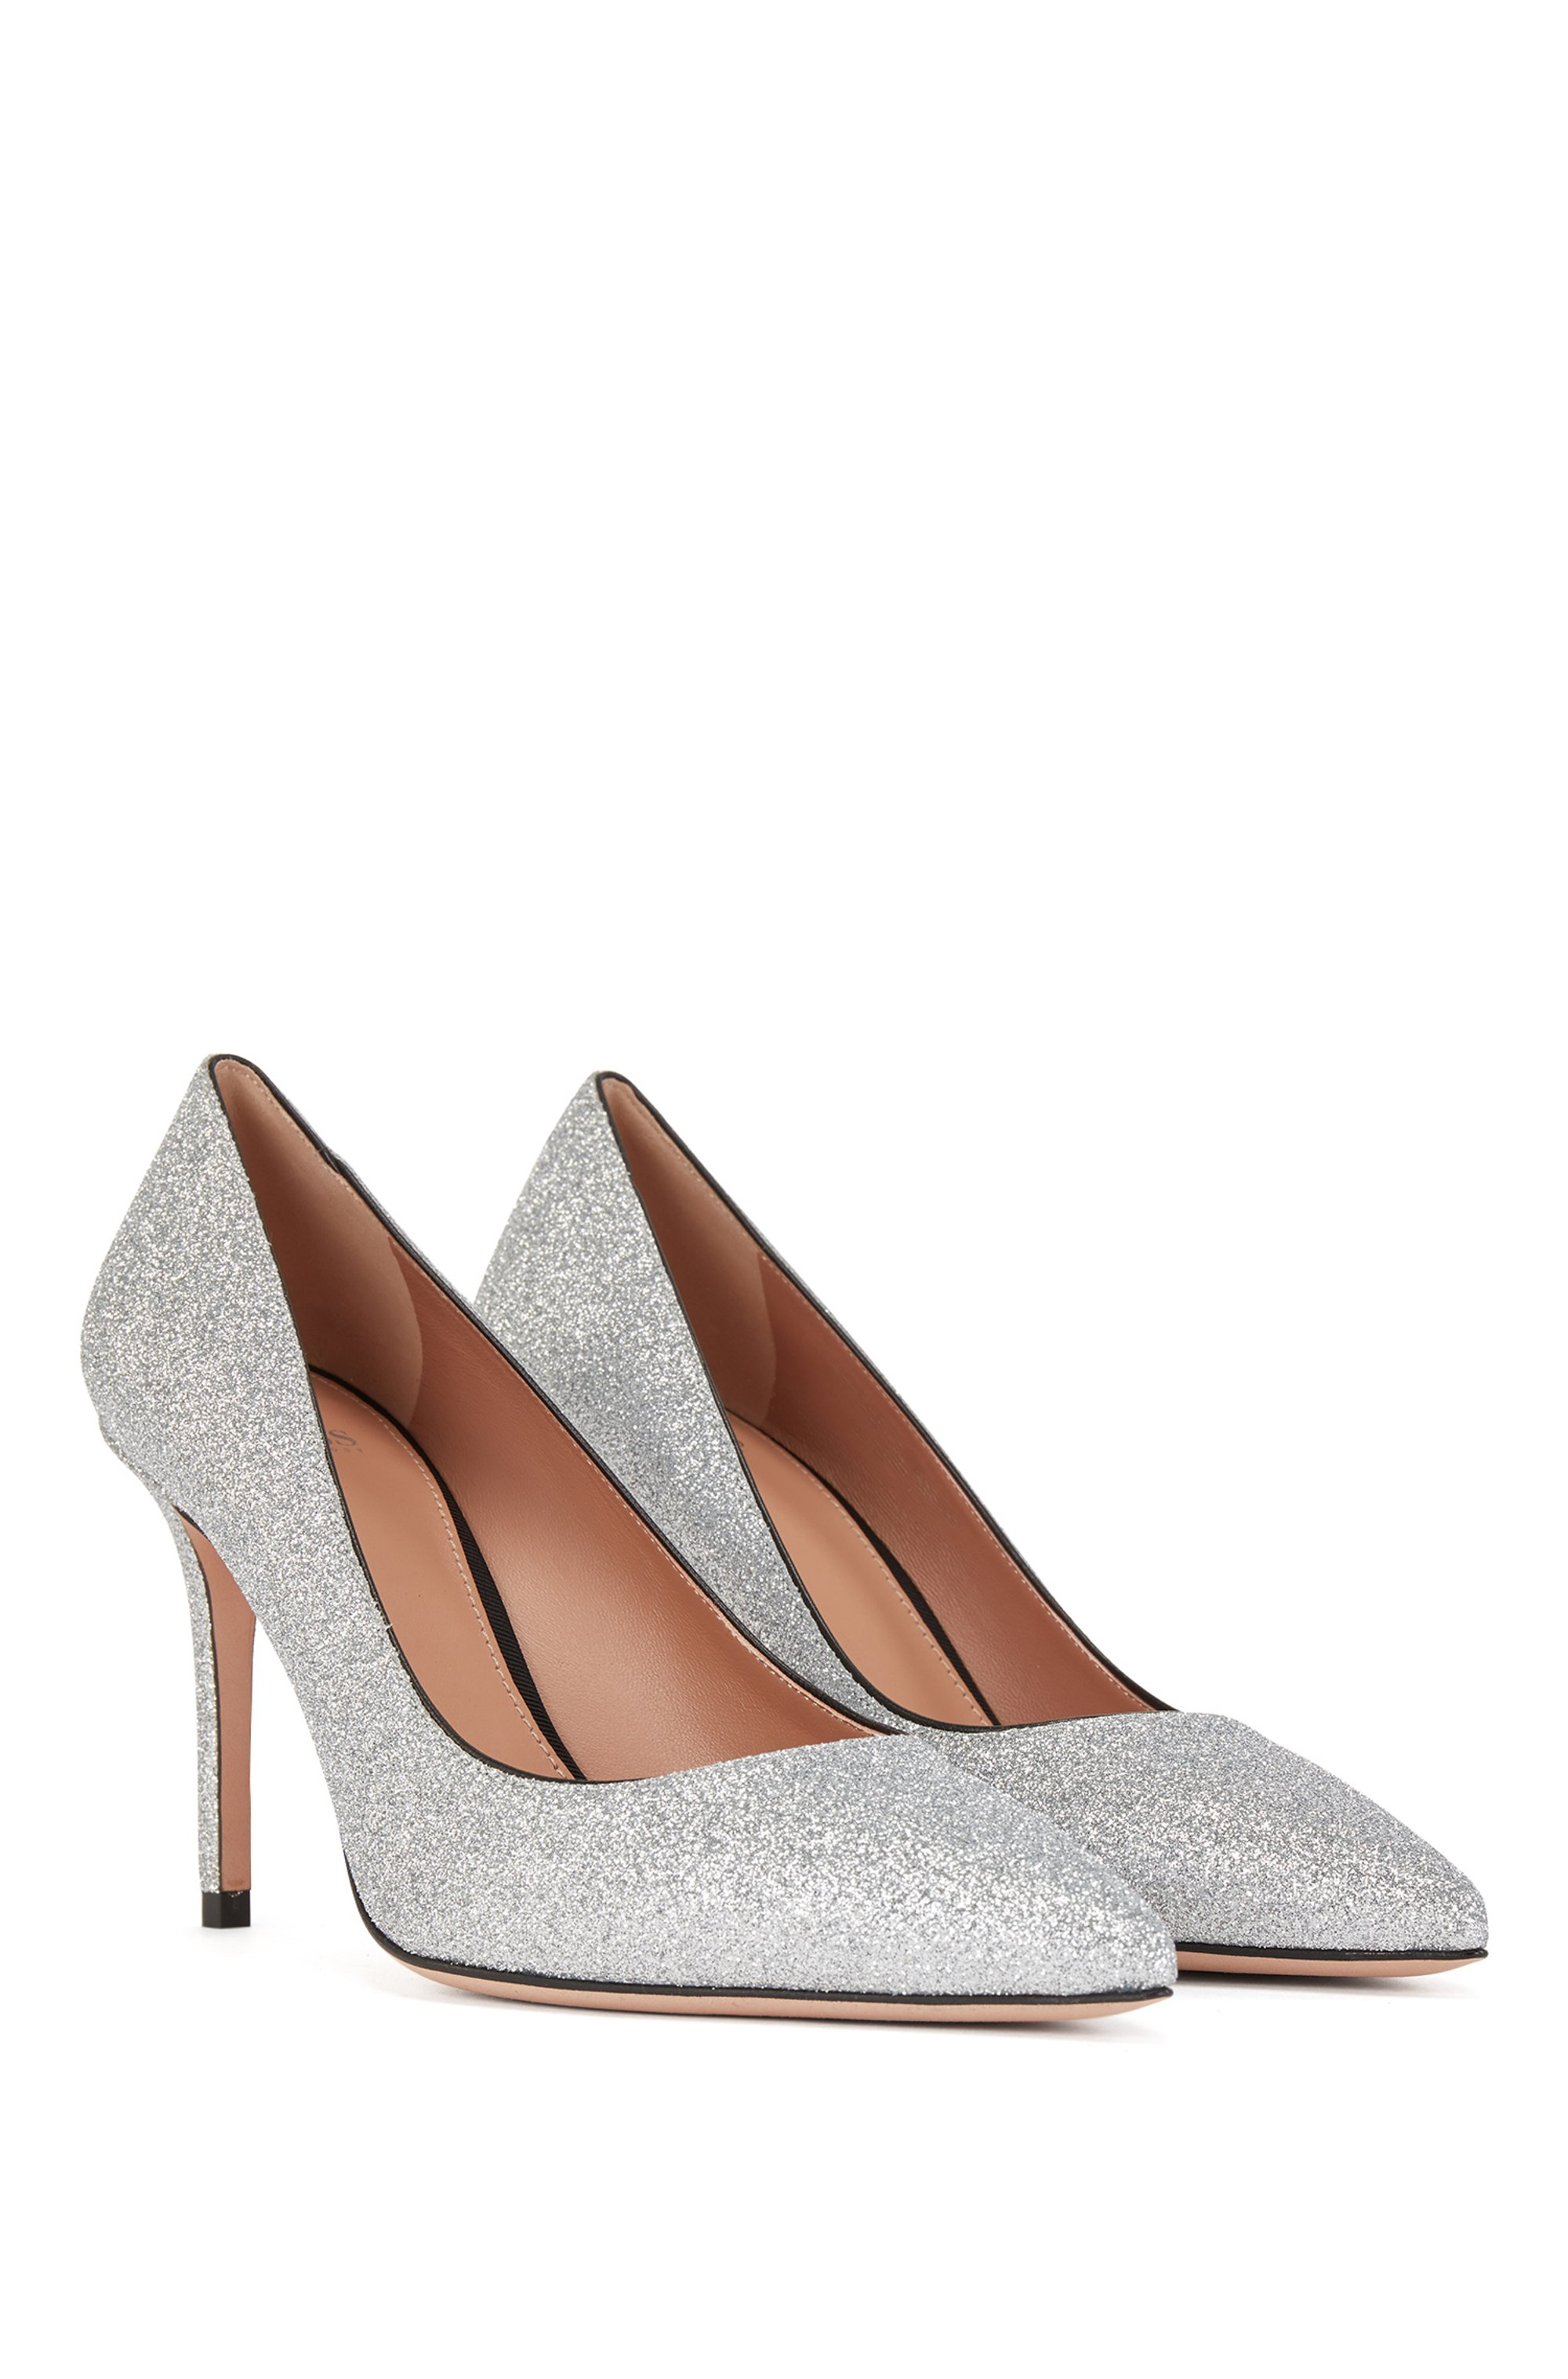 High-heeled pumps in glitter fabric with pointed toe